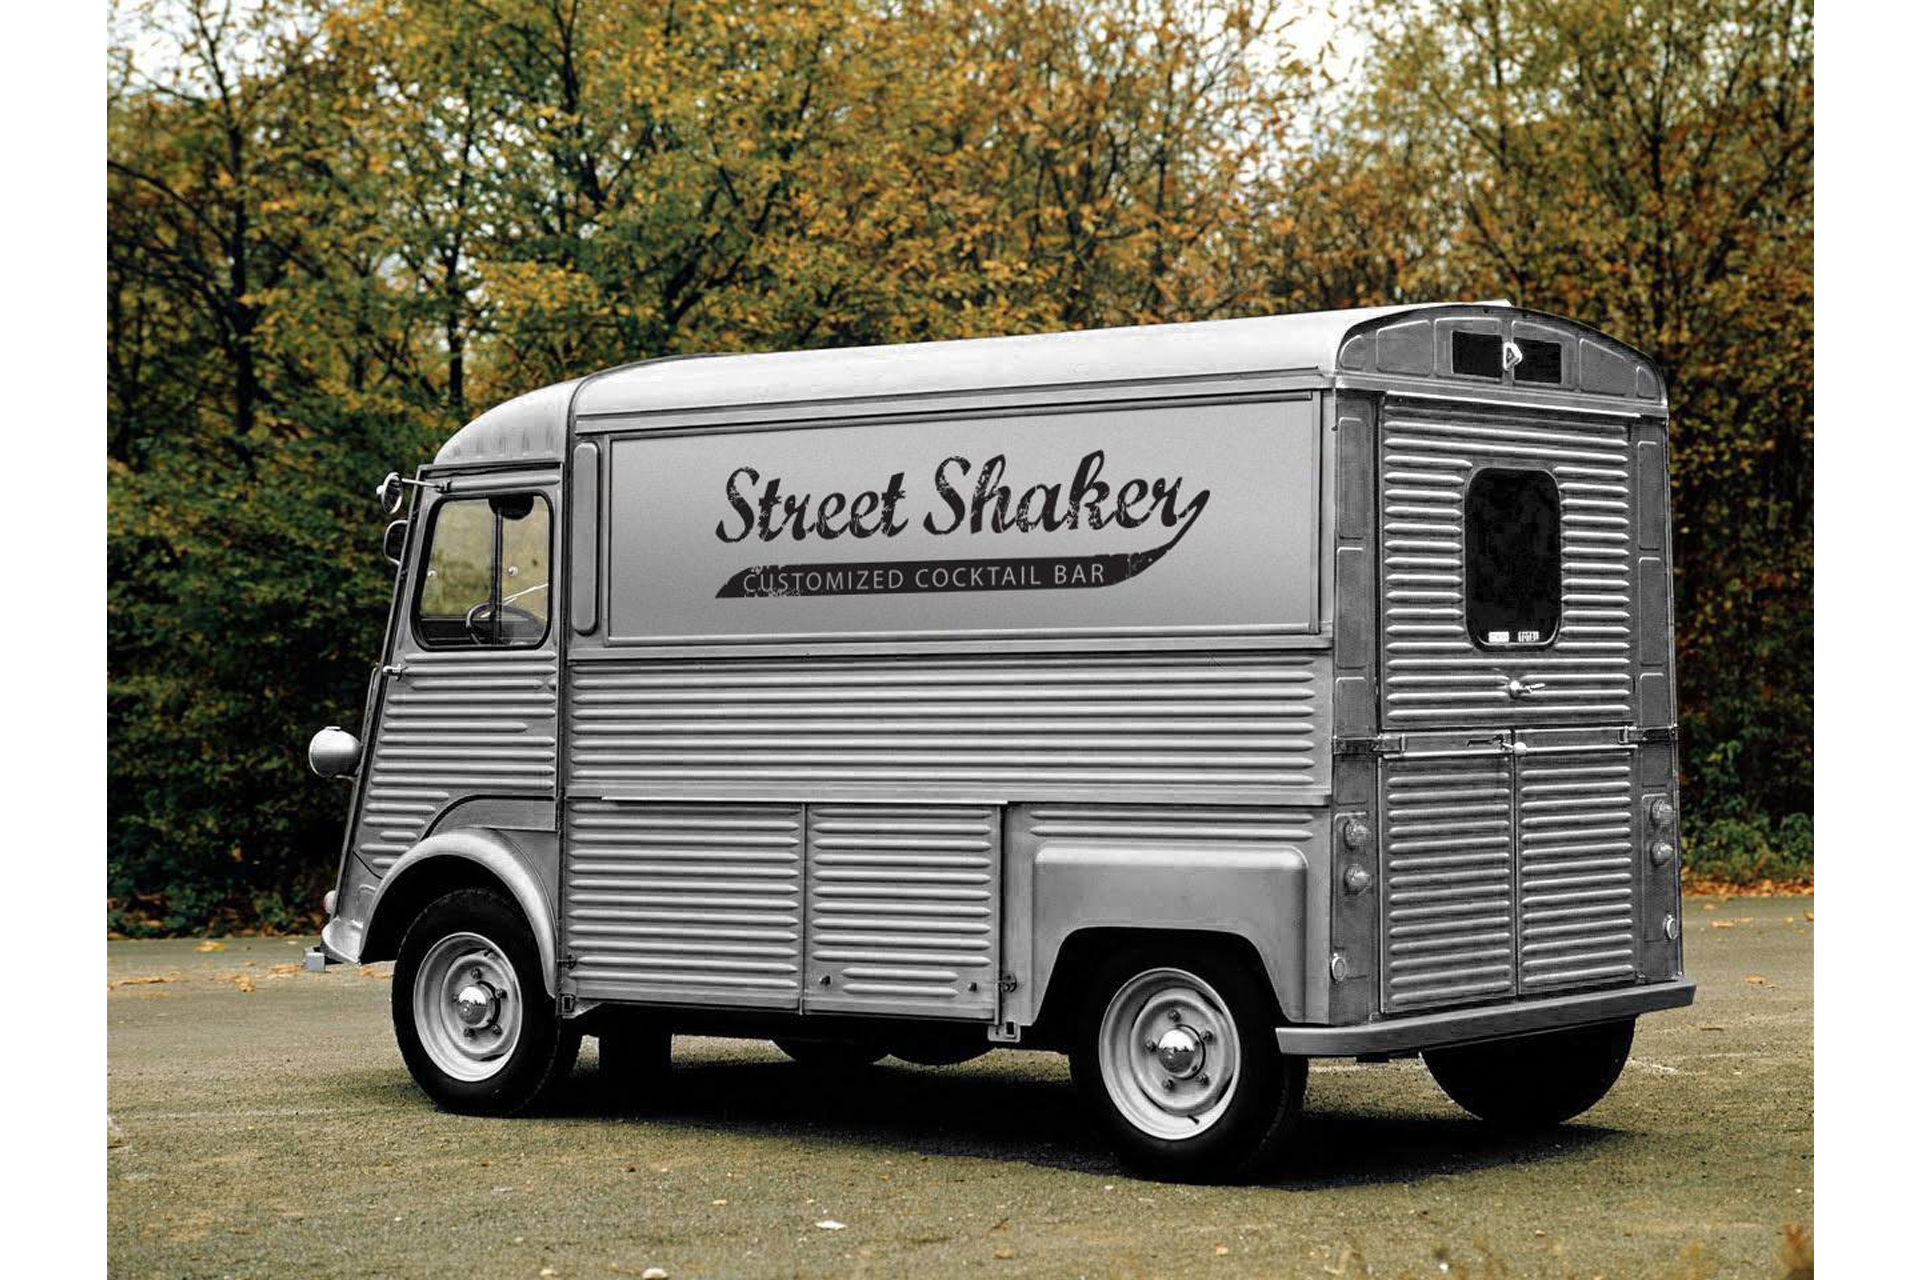 Street Shaker Cocktail Truck2